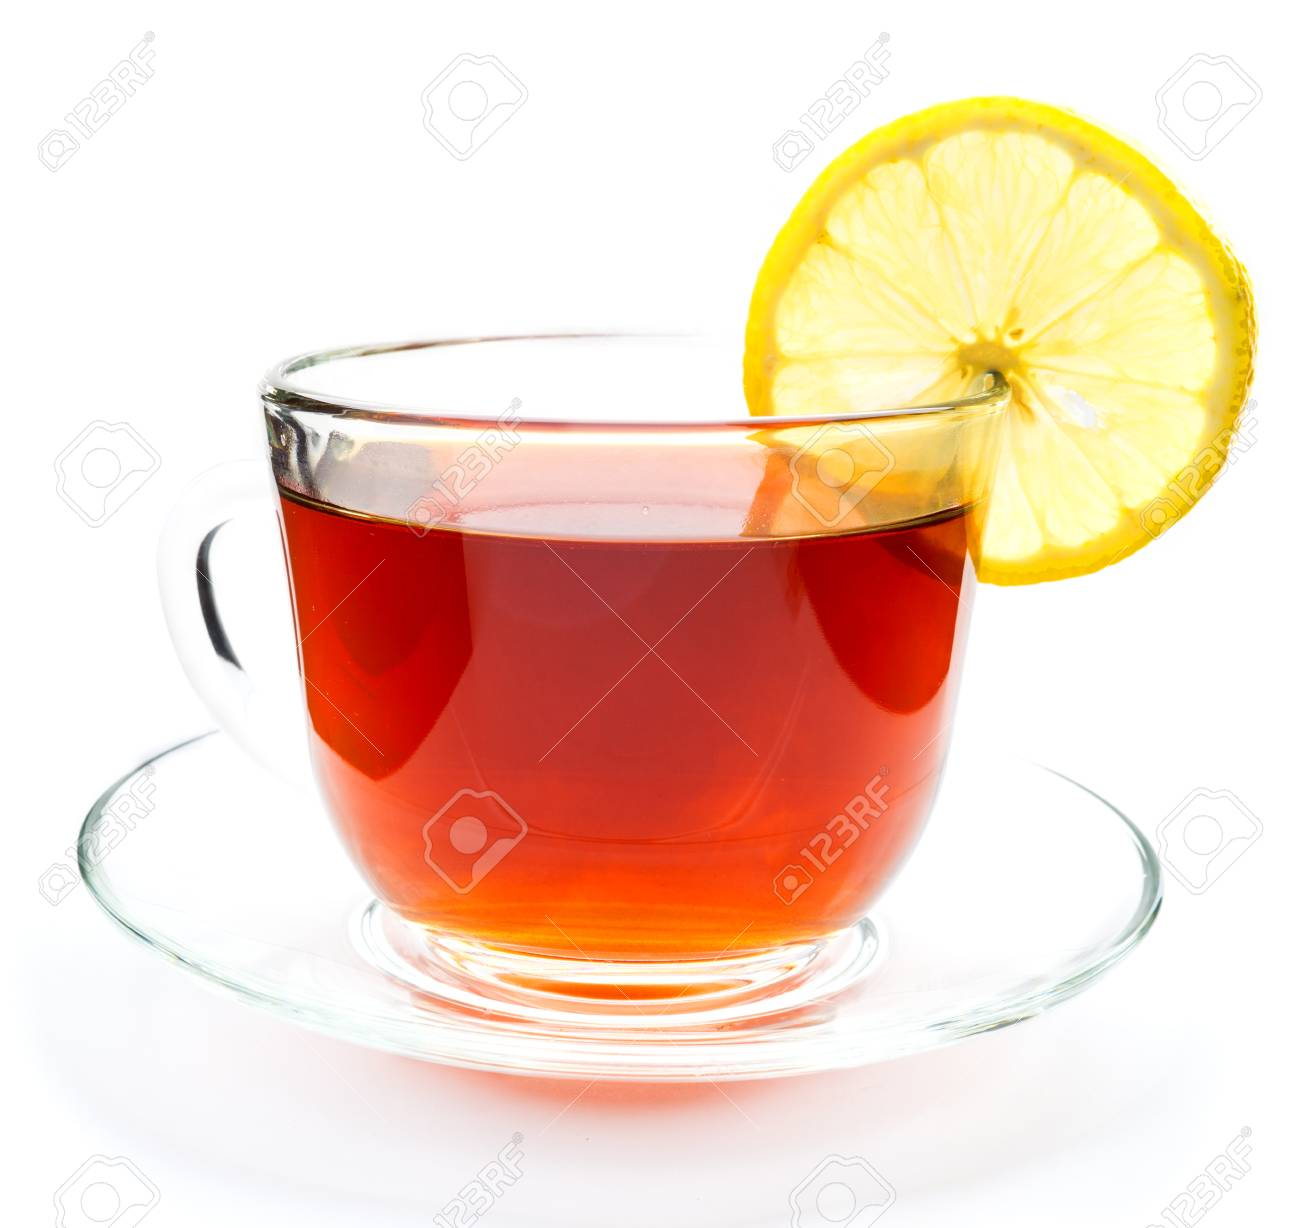 isolated transparent cup of tea with lemon slice on white background